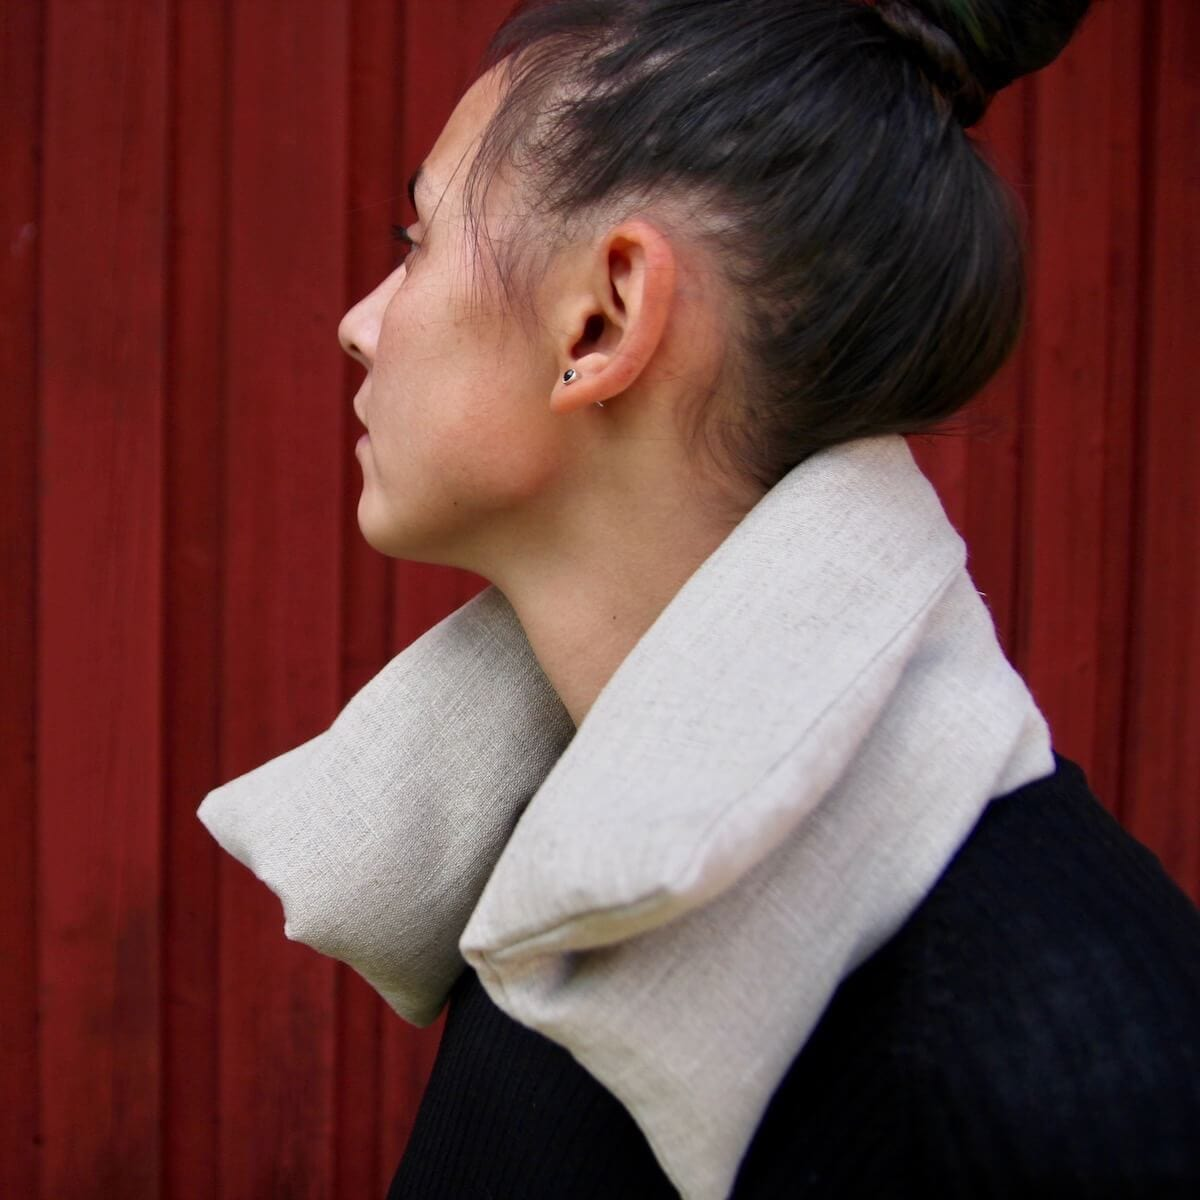 wheat bag helping with neck pain